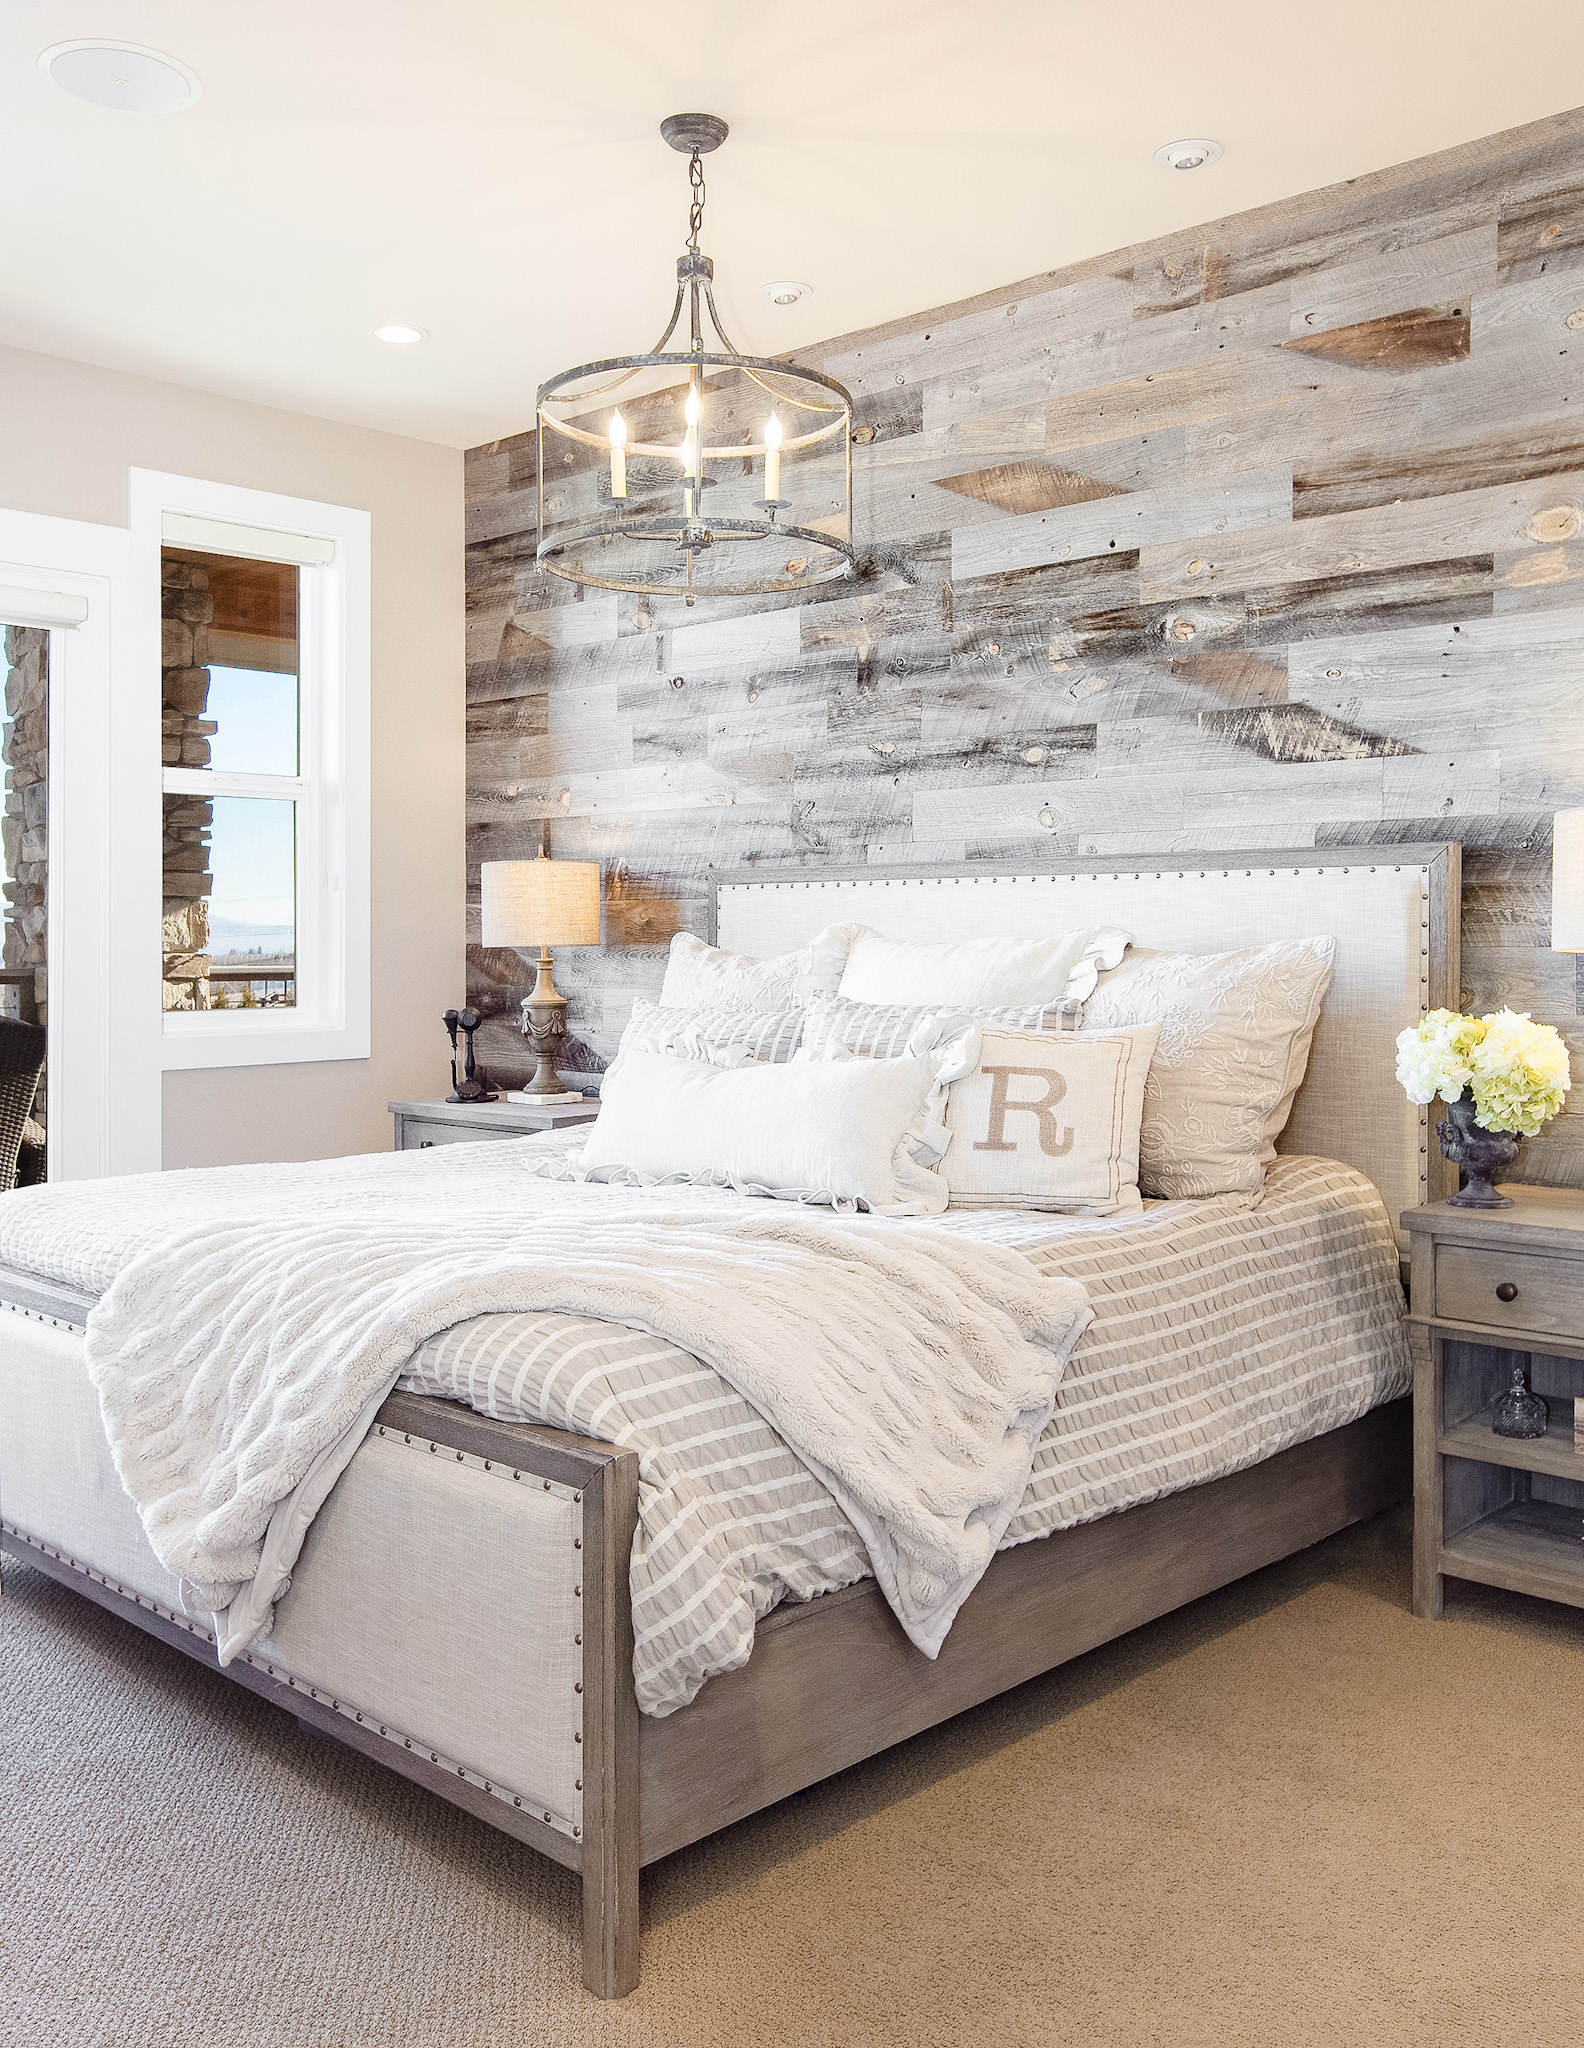 Modern Farmhouse Decorating Ideas for Bedroom